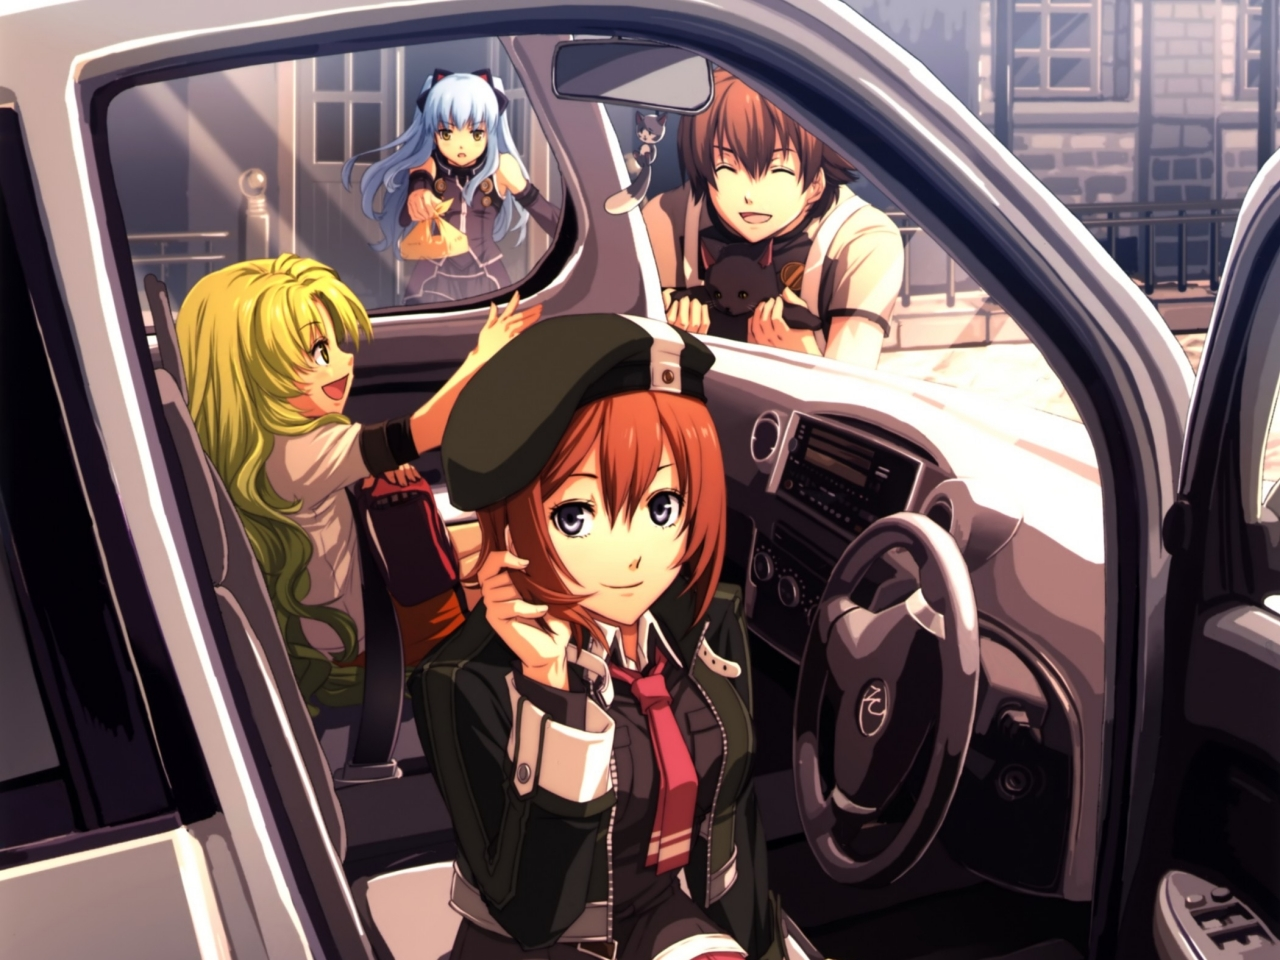 video_games_cars_tie_thigh_hig_1280x960_miscellaneoushi.com